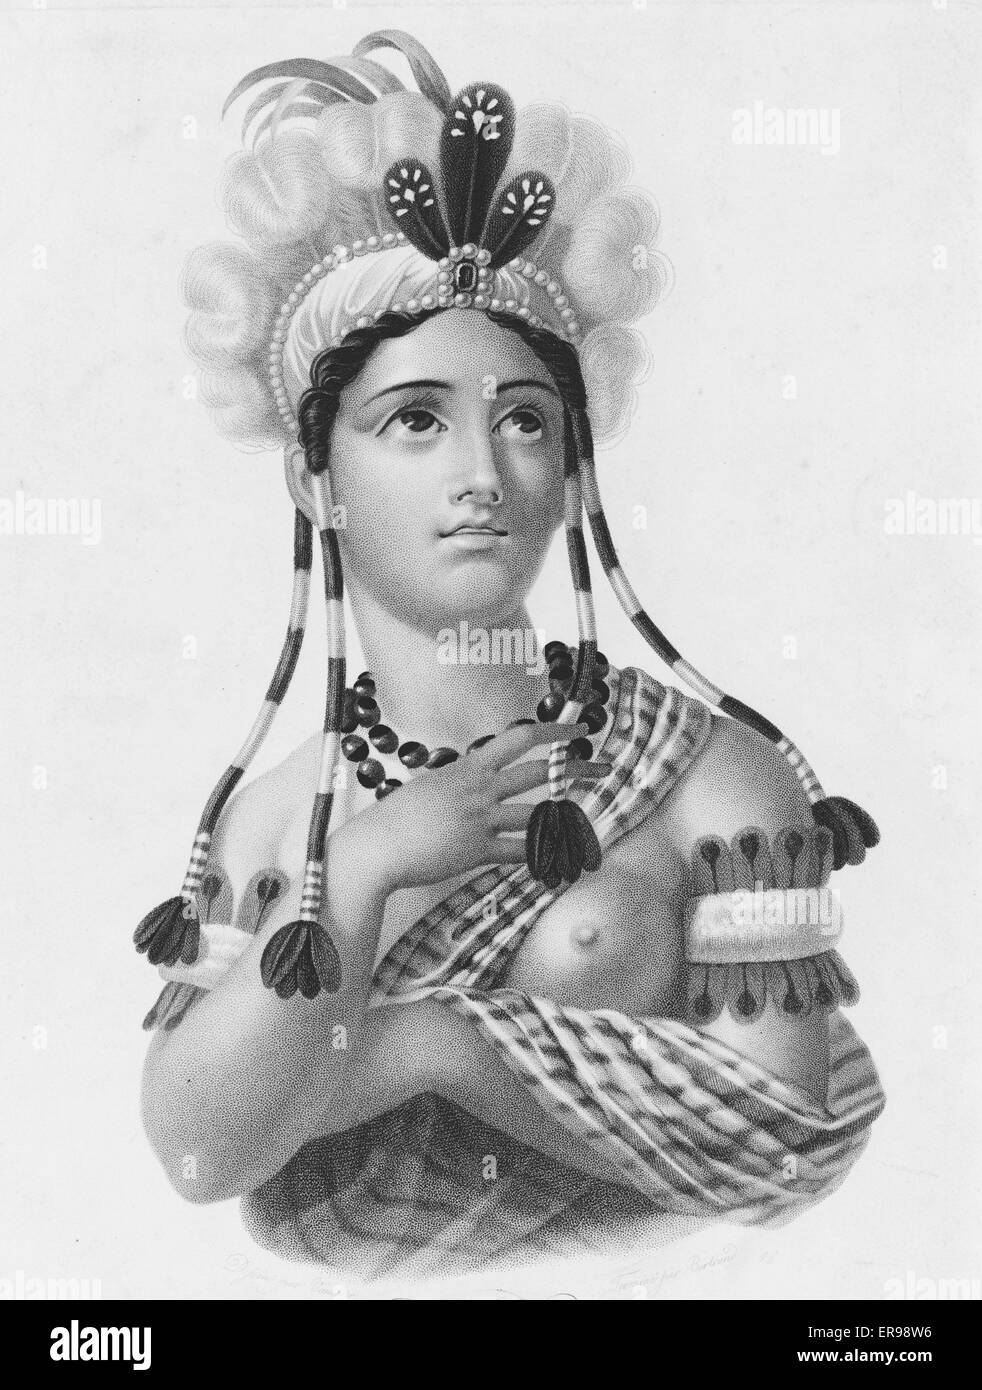 L'Amerique. American Indian woman, half-length portrait, bare-breasted. Date 181-?. - Stock Image